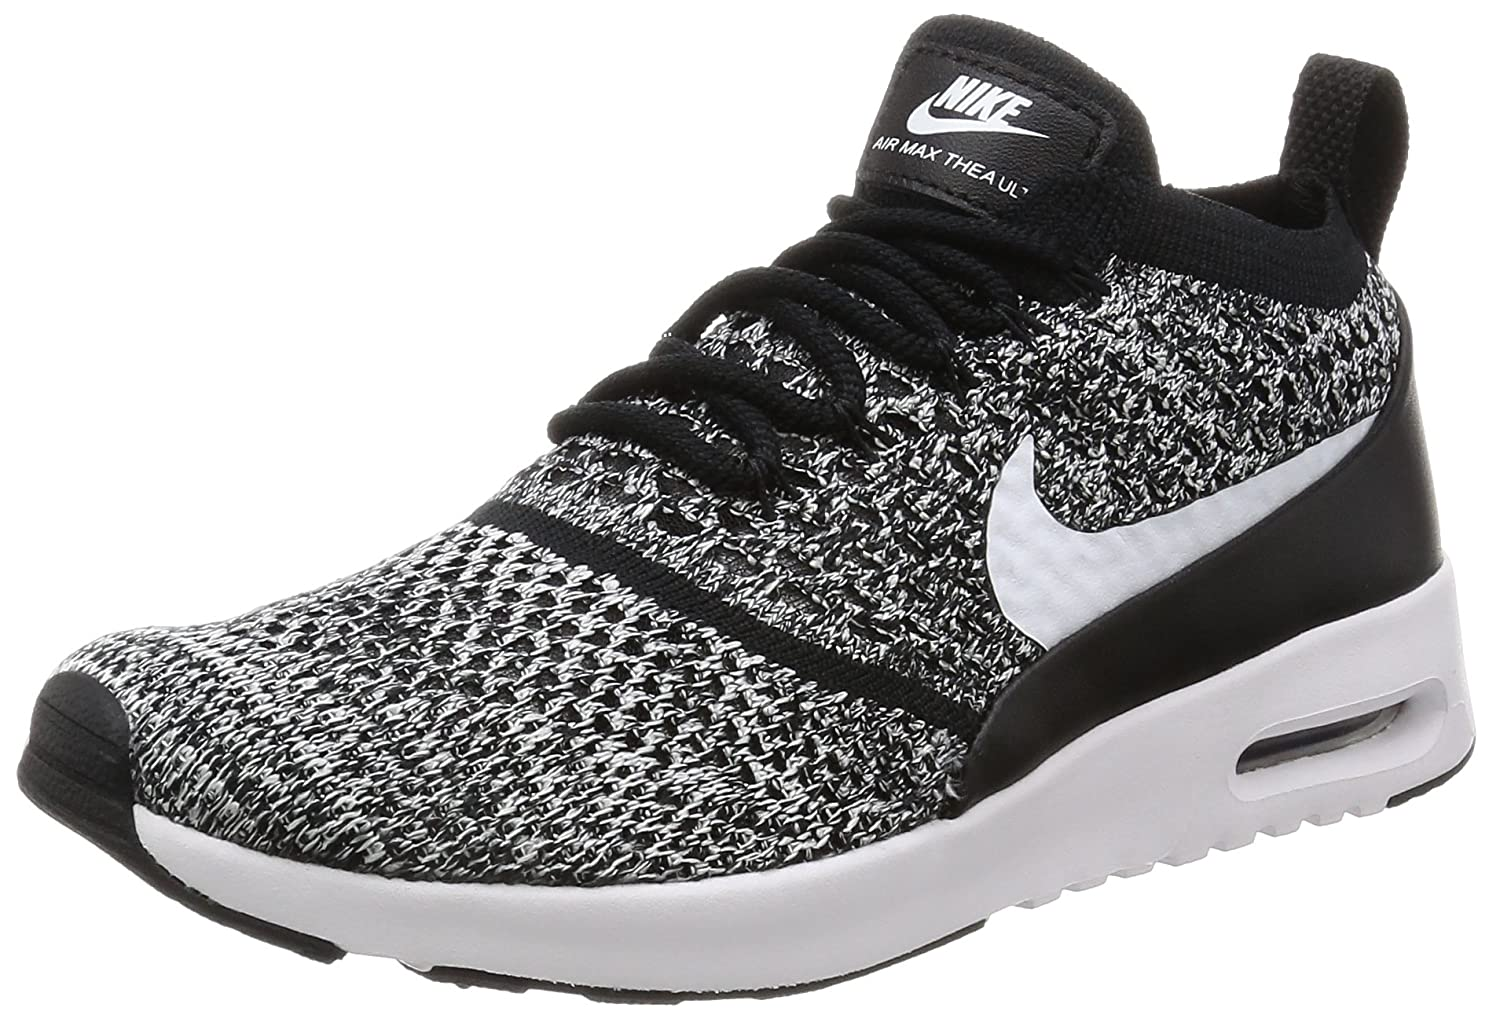 watch be7ca 73bd2 Nike Air Max Thea Ultra Flyknit, Baskets Femme  Amazon.fr  Chaussures et  Sacs